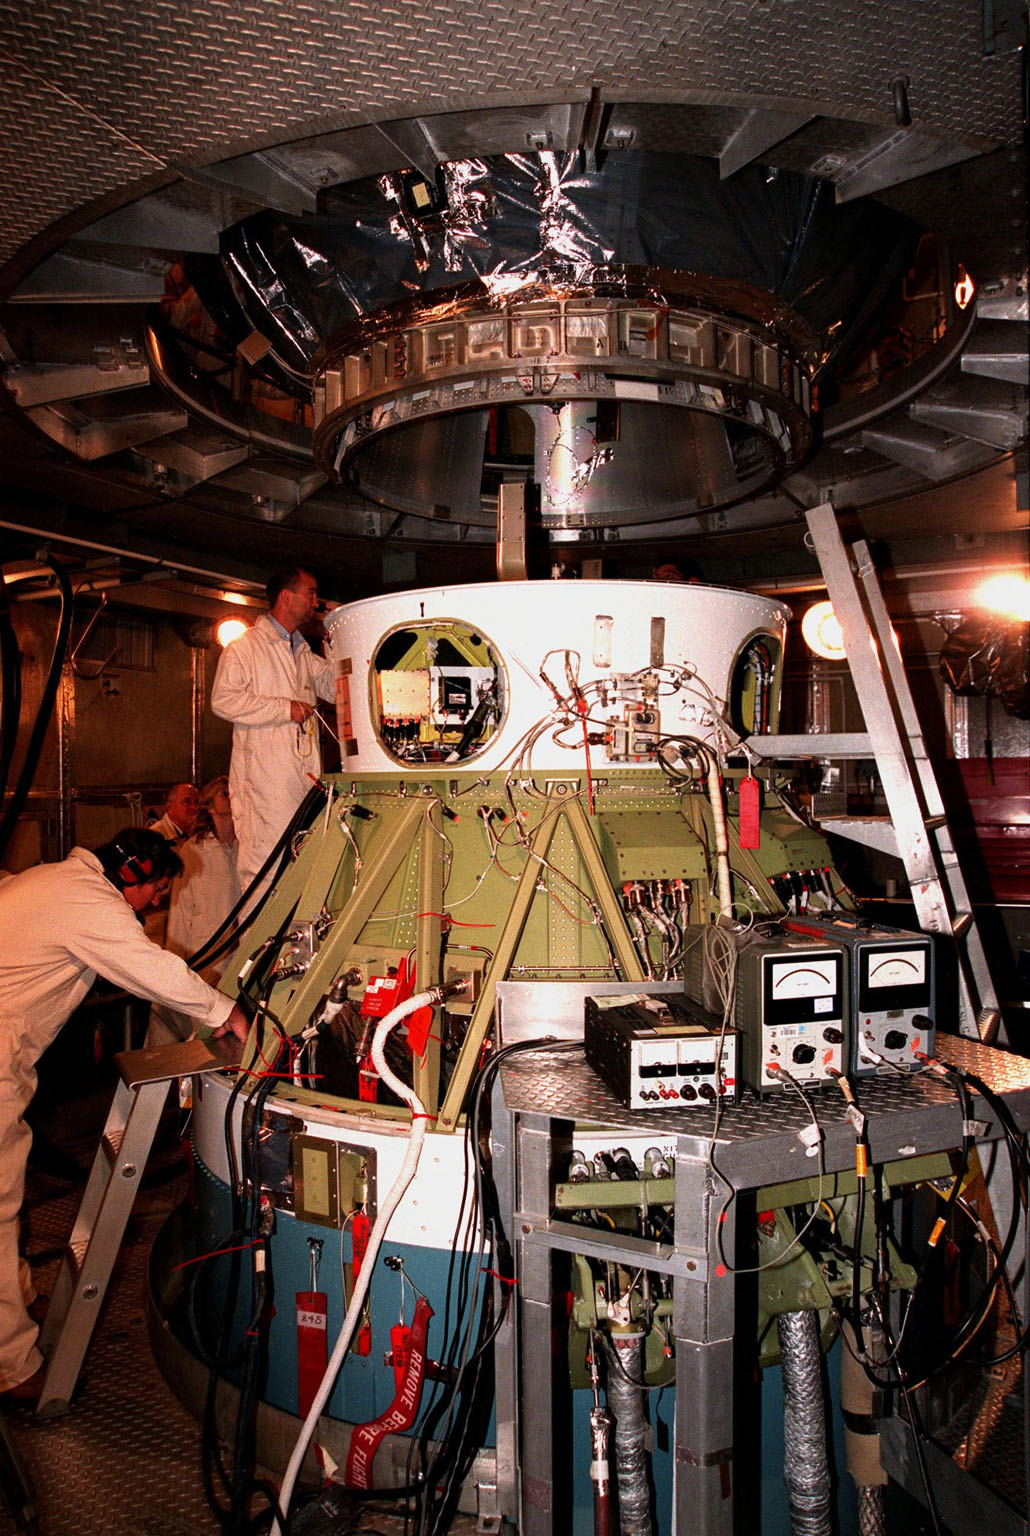 Workers inside the launch tower at Pad 17-A, Cape Canaveral Air Station, watch as the third stage of a Boeing Delta II rocket is lowered for mating with the second stage below it. The Stardust spacecraft, above it out of sight, is connected to the rocket's third stage. Stardust, targeted for liftoff on Feb. 6, is destined for a close encounter with the comet Wild 2 in January 2004. Using a silicon-based substance called aerogel, Stardust will capture comet particles flying off the nucleus of the comet. The spacecraft also will bring back samples of interstellar dust. These materials consist of ancient pre-solar interstellar grains and other remnants left over from the formation of the solar system. Scientists expect their analysis to provide important insights into the evolution of the sun and planets and possibly into the origin of life itself. The collected samples will return to Earth in a sample return capsule to be jettisoned as Stardust swings by Earth in January 2006